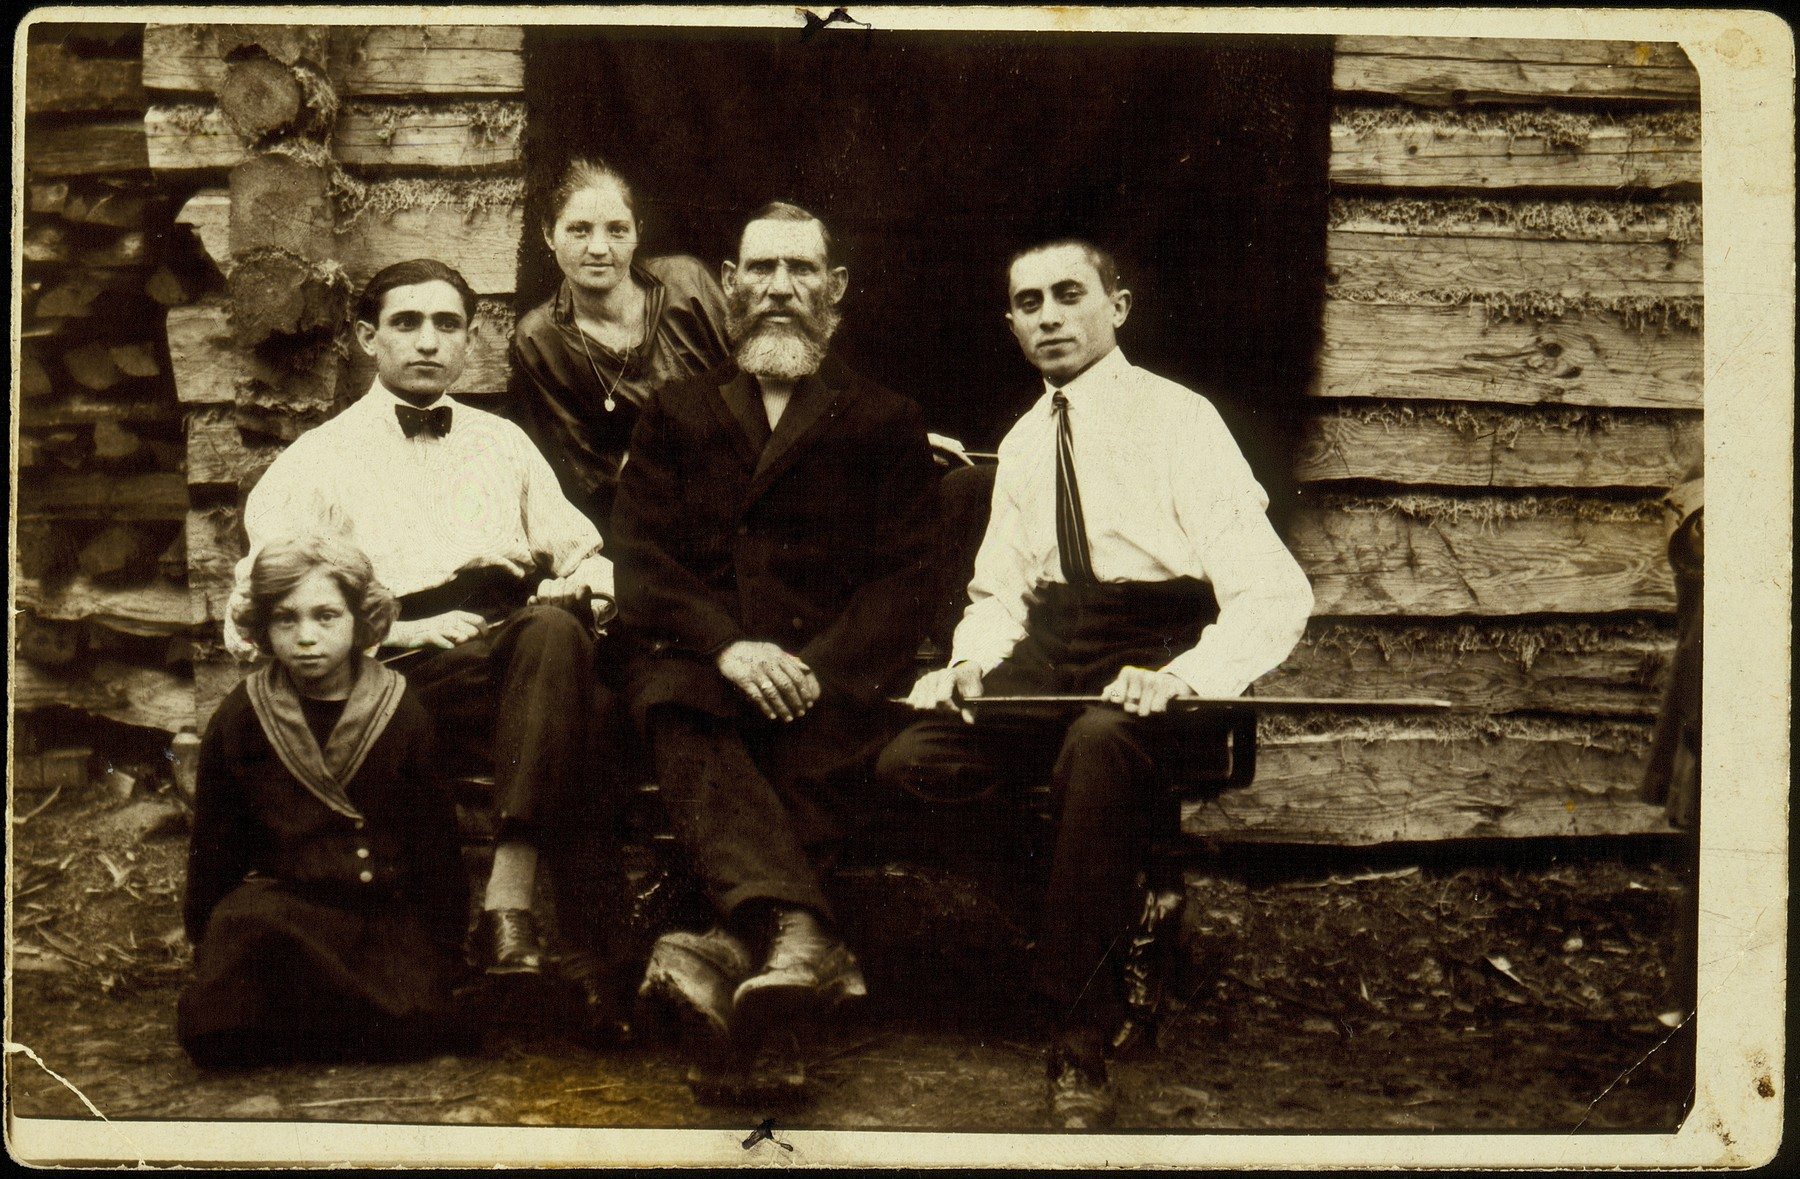 The Kremin family sits at the entrance to a log cabin.   Yude-Mendl Kremin (center), with his son-in-law Hirshl Tatarski (right), daughter Rivka Tatarski, son Hayyim-Itchke, and granddaughter Hayya-Rochke Shmidt.   Yude-Medl had a clubfoot as a result of a severe beating by Lida coachmen during a labor dispute.  Yude-Mendl died a natural death; all the others perished in the September 1941 massacre.